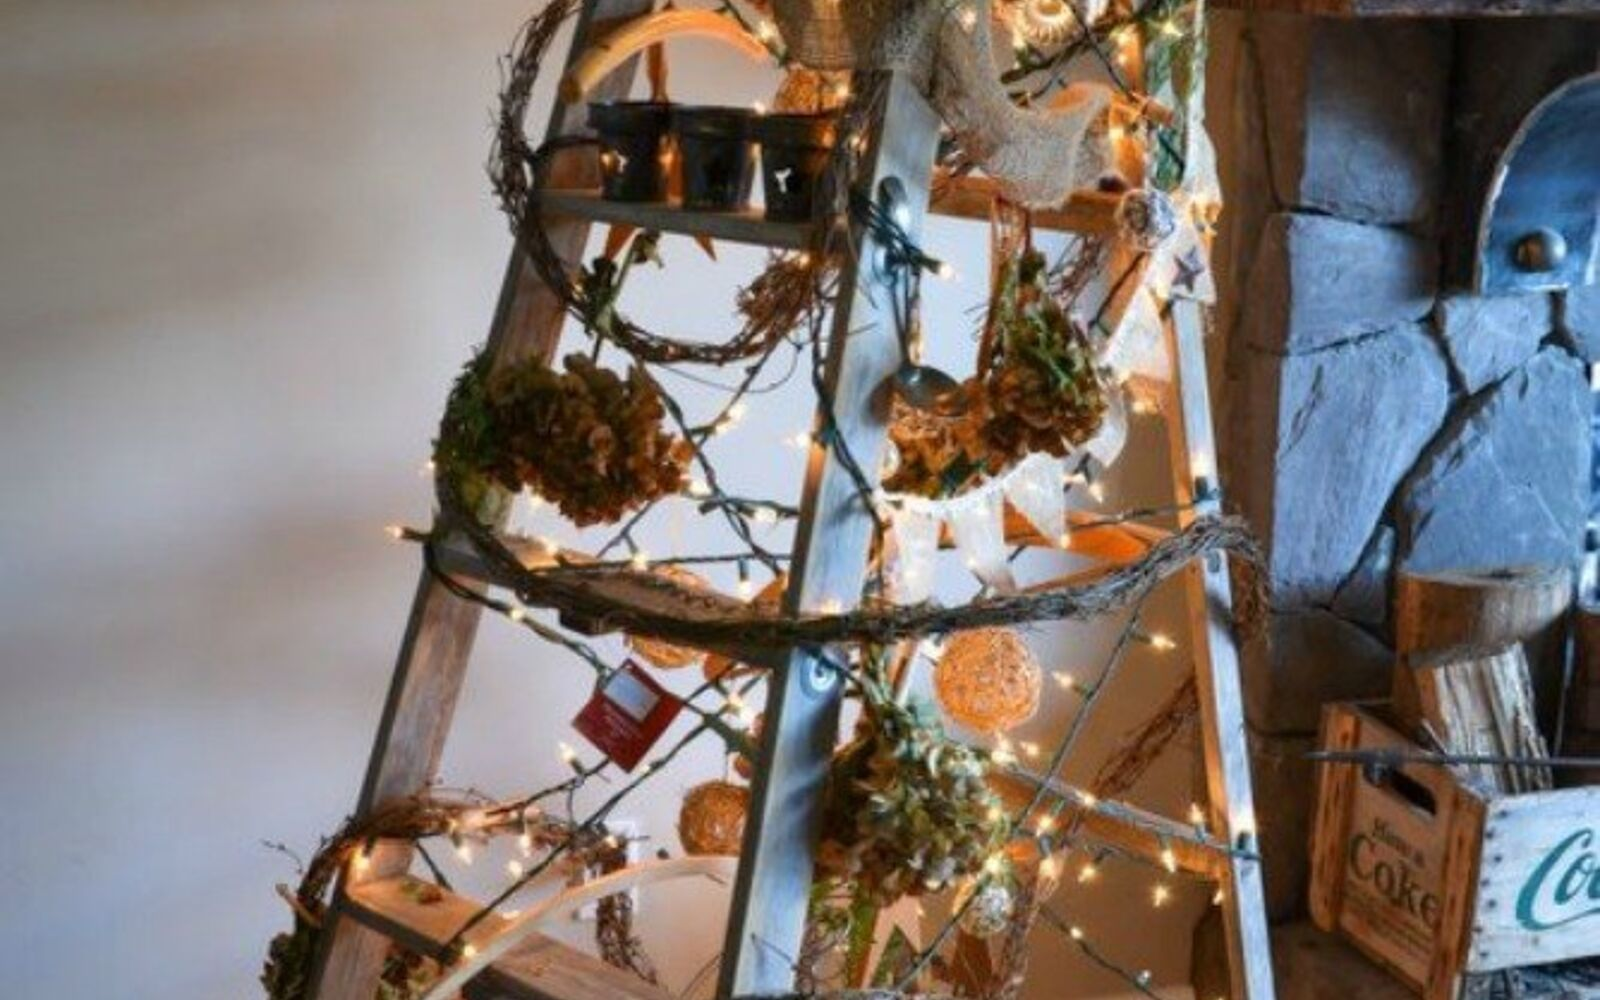 s forget your traditional christmas tree these are even better, Wrap ornaments and garland around a ladder